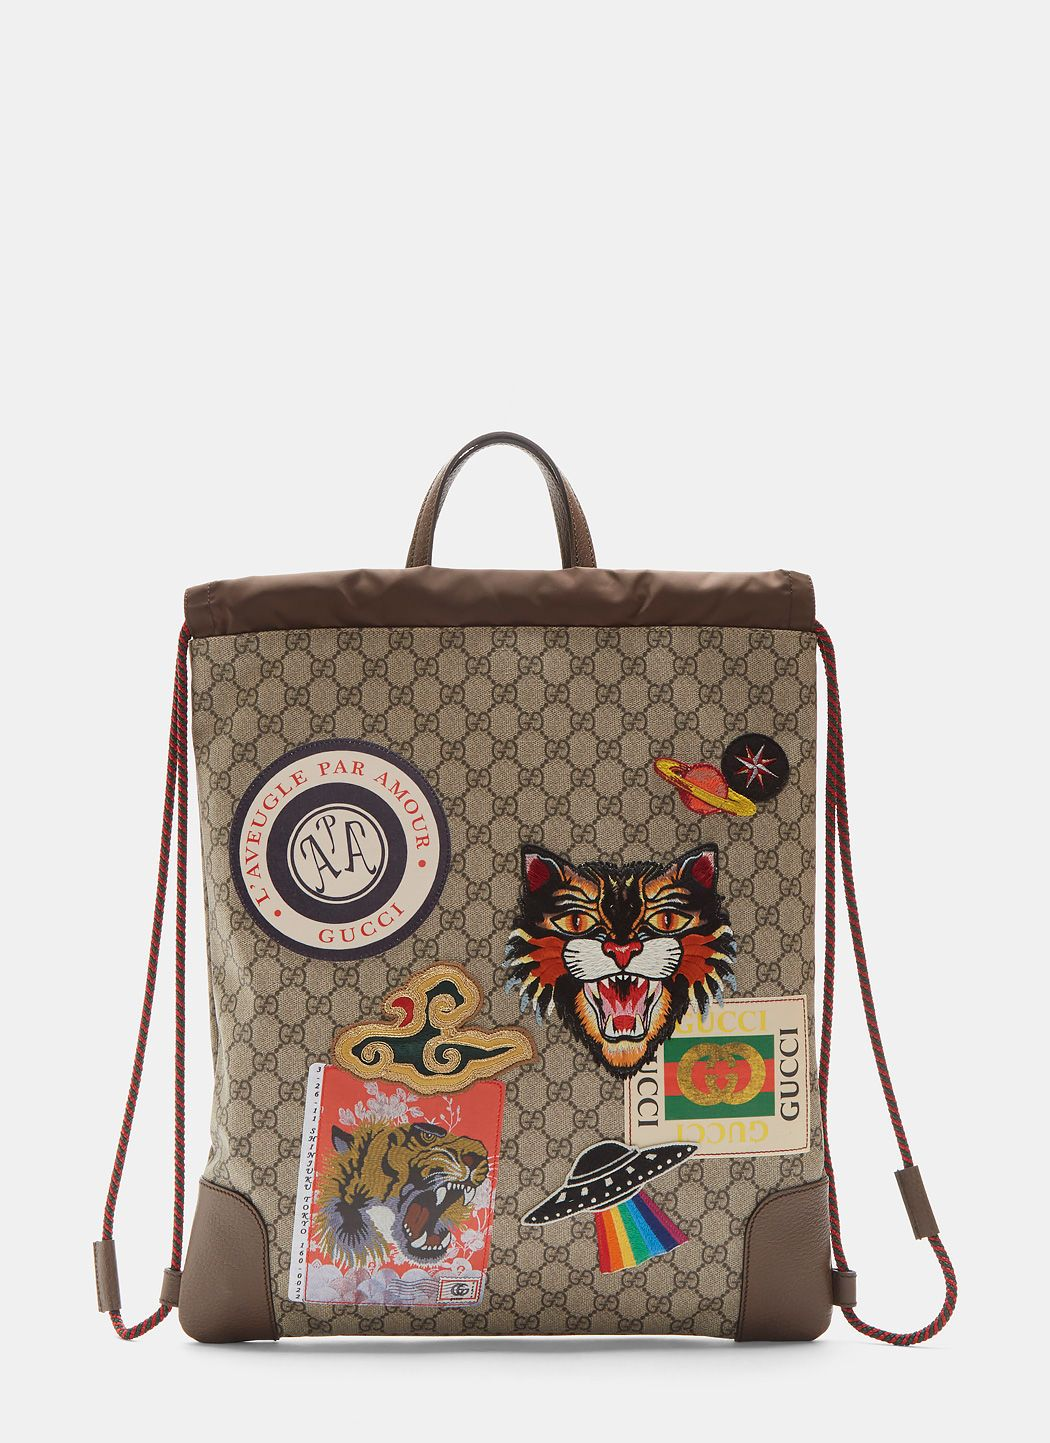 a36ab476dd9632 GUCCI Gucci Courier Gg Supreme Drawstring Backpack In Brown. #gucci #bags  #leather #lining #backpacks #linen #cotton #